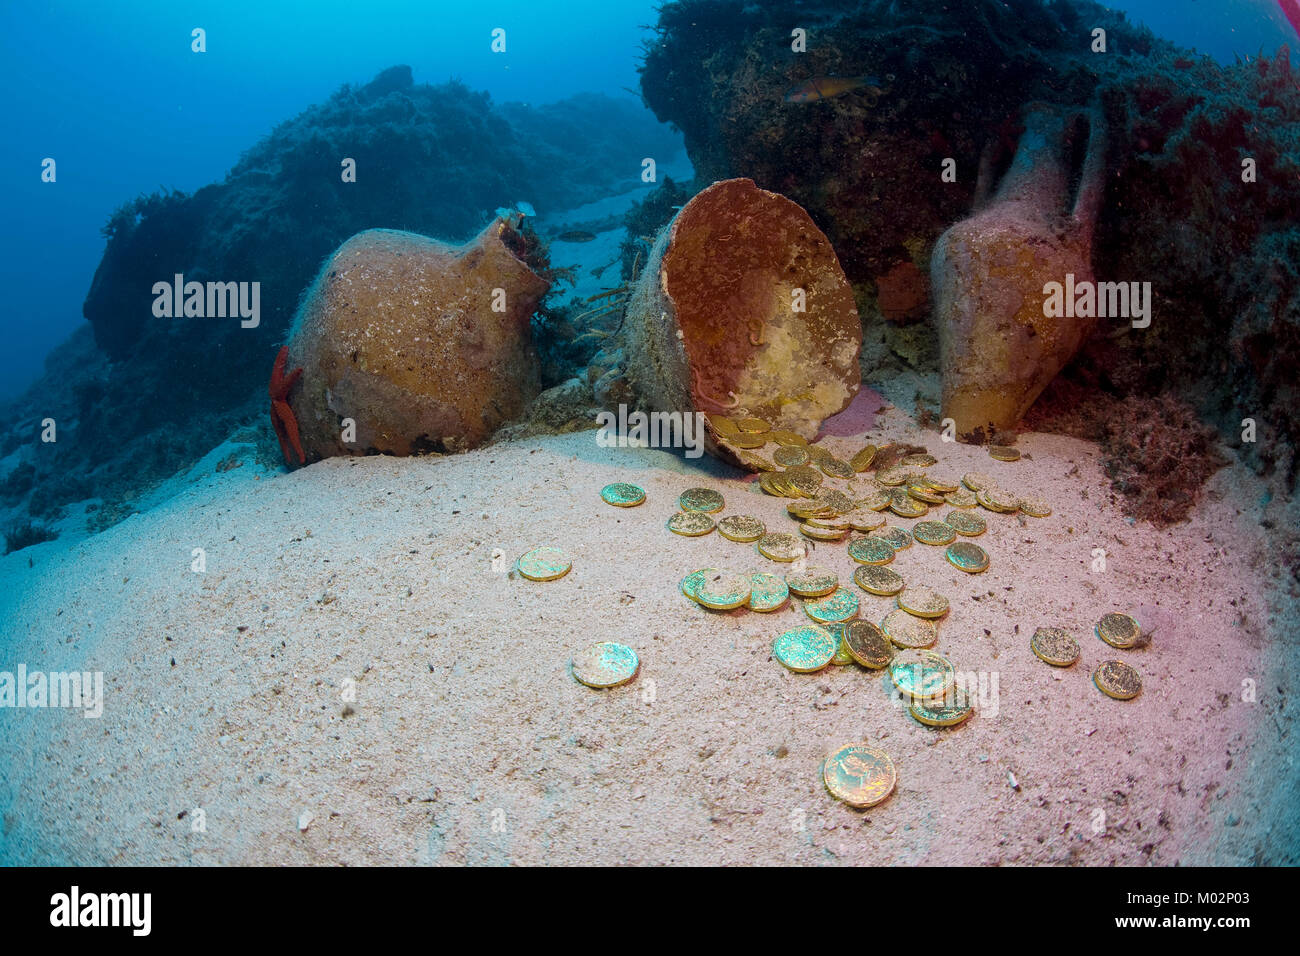 Underwater treasure, old amphoras of 2nd century B.C and gold coins on seabed, Lykia, Mediterranean sea, Turkey - Stock Image